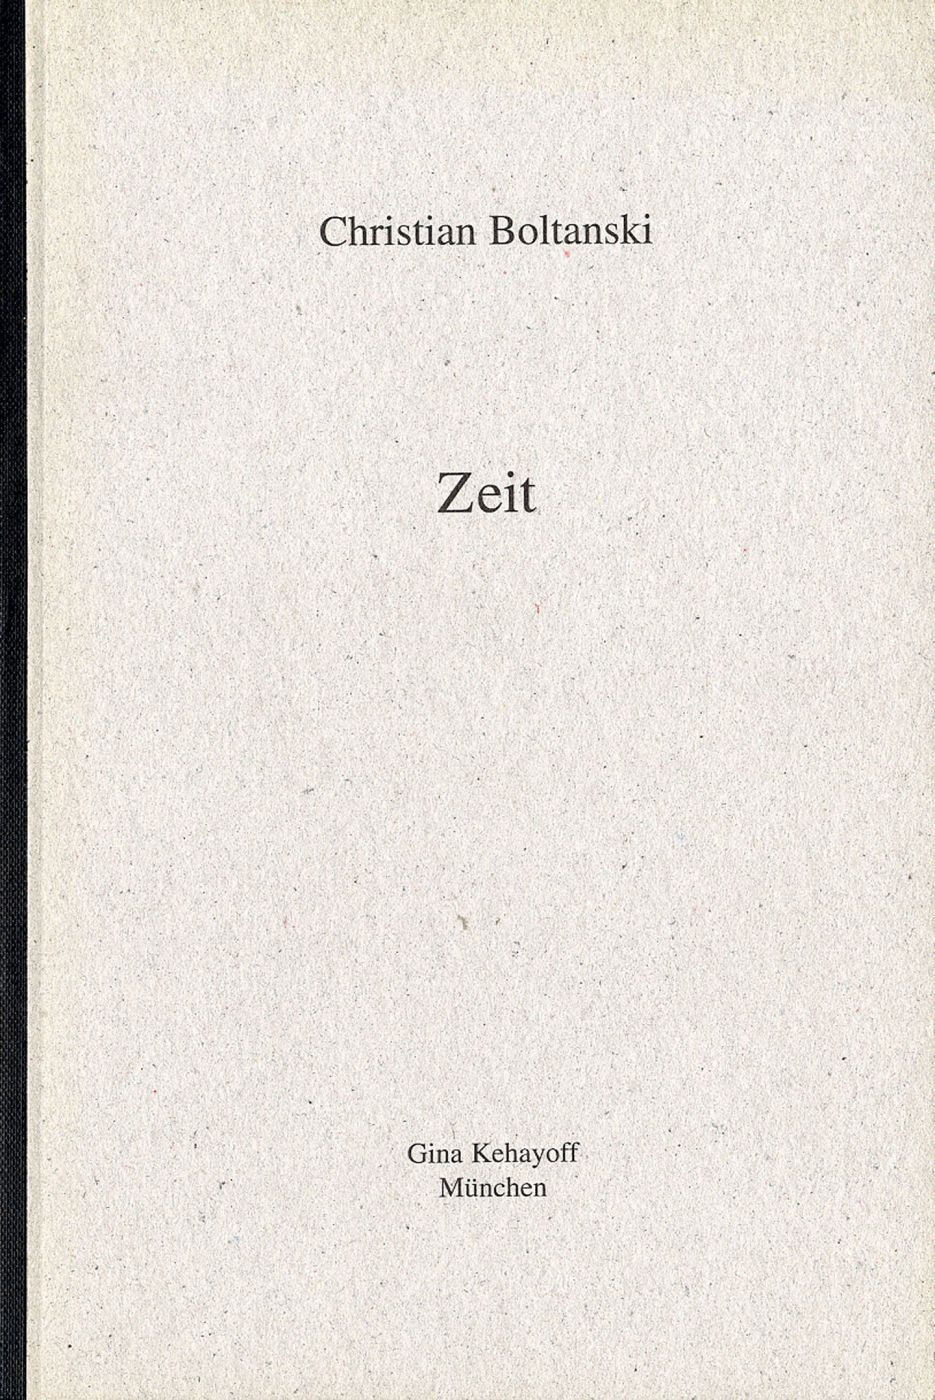 Christian Boltanski: Zeit (Time)